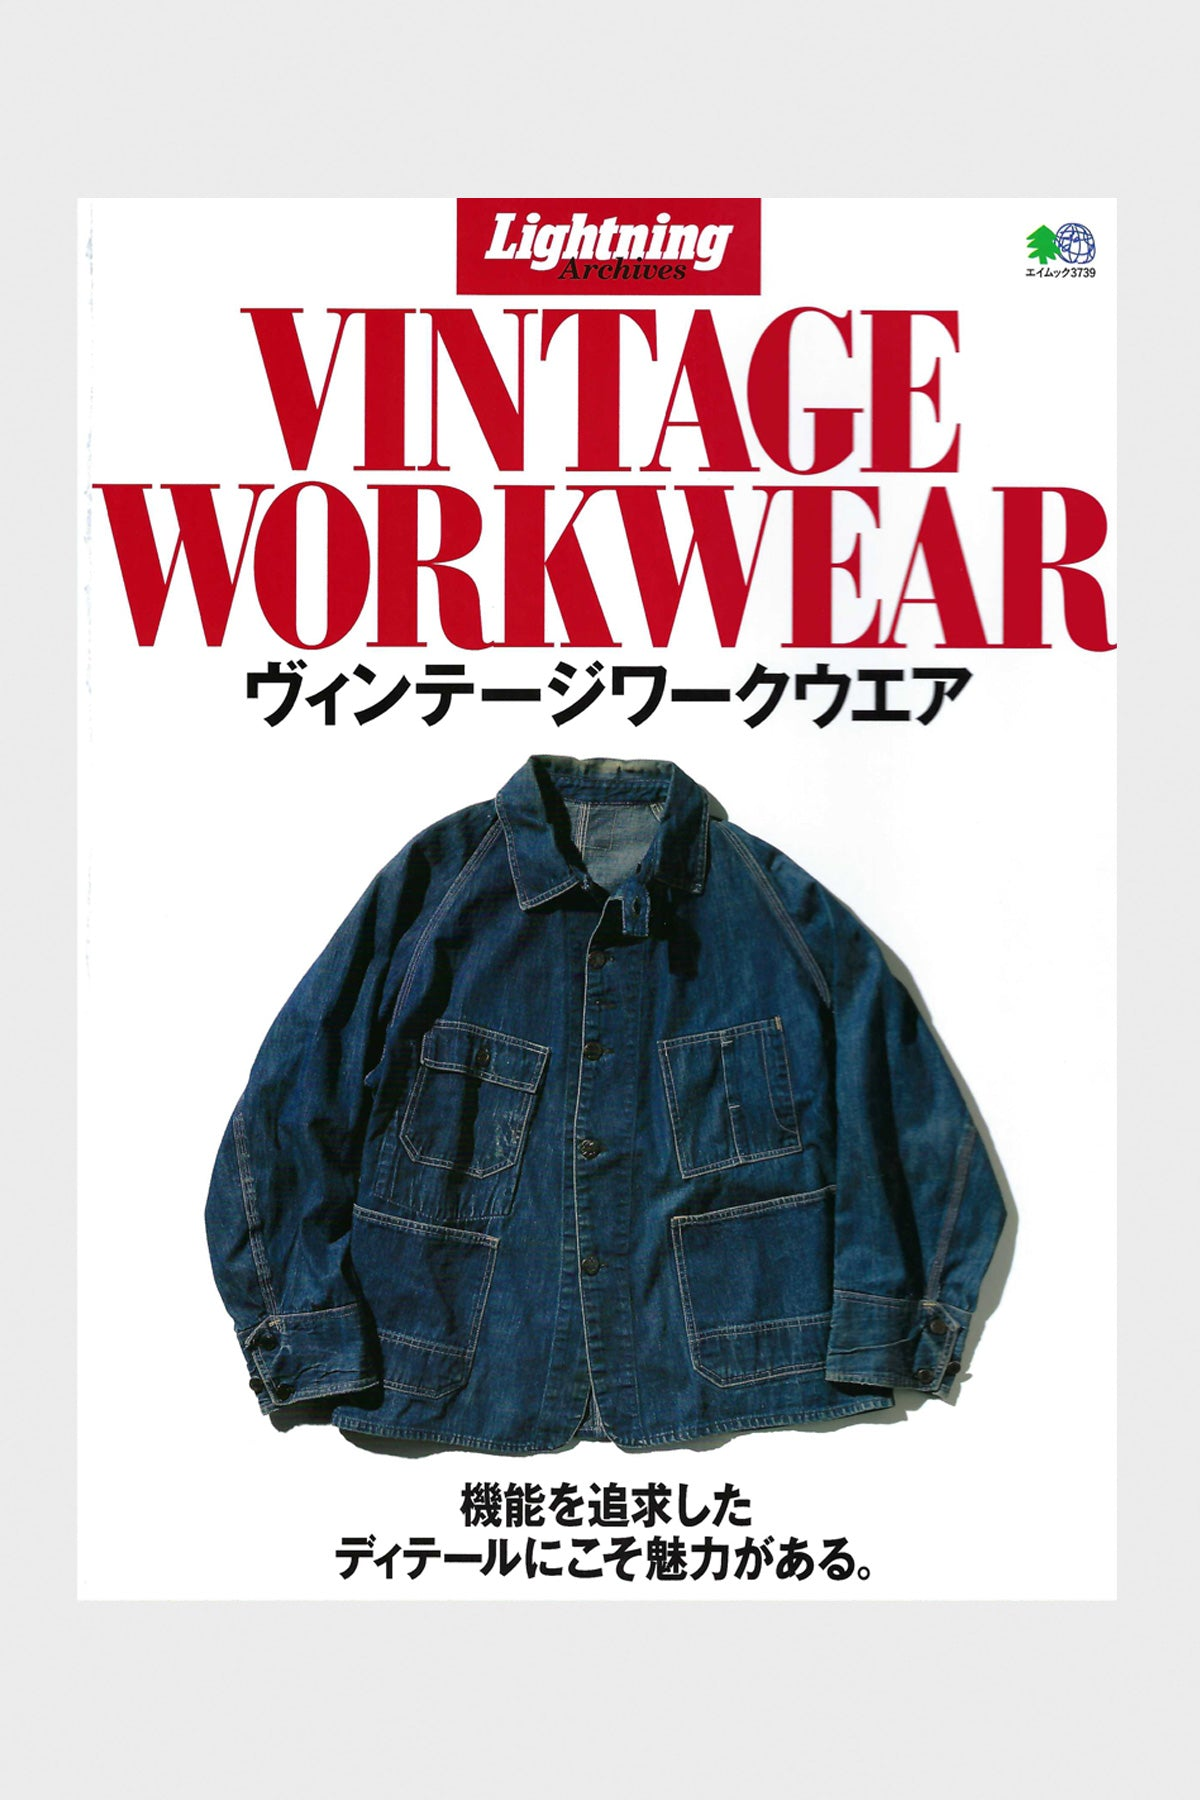 Lightning - Vintage Workwear - Canoe Club